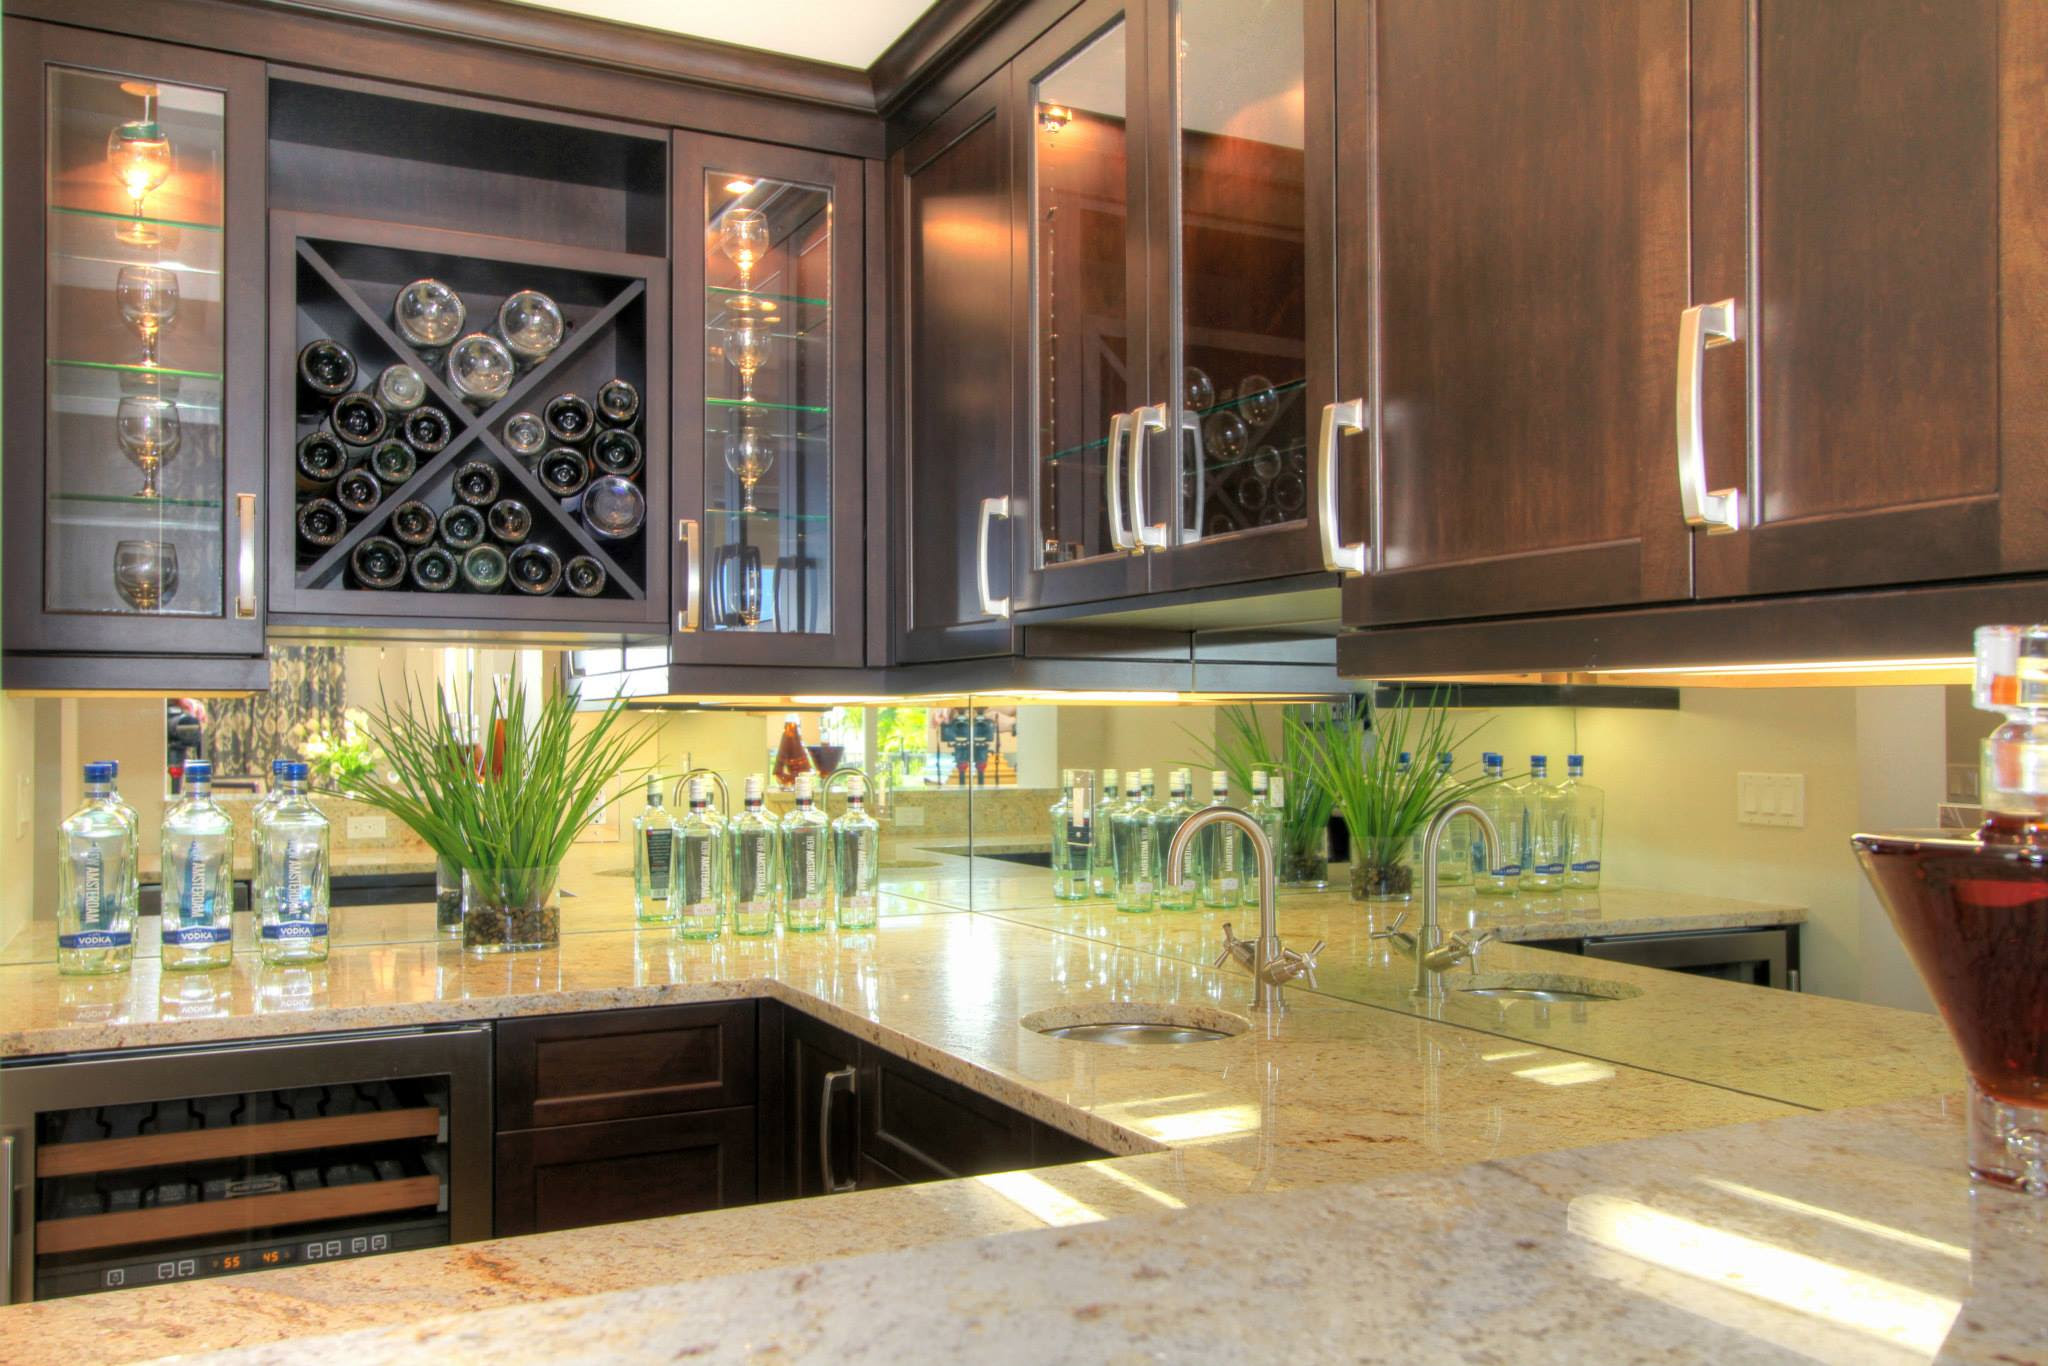 - Mirrored Kitchen Backsplash - Misli Poklave